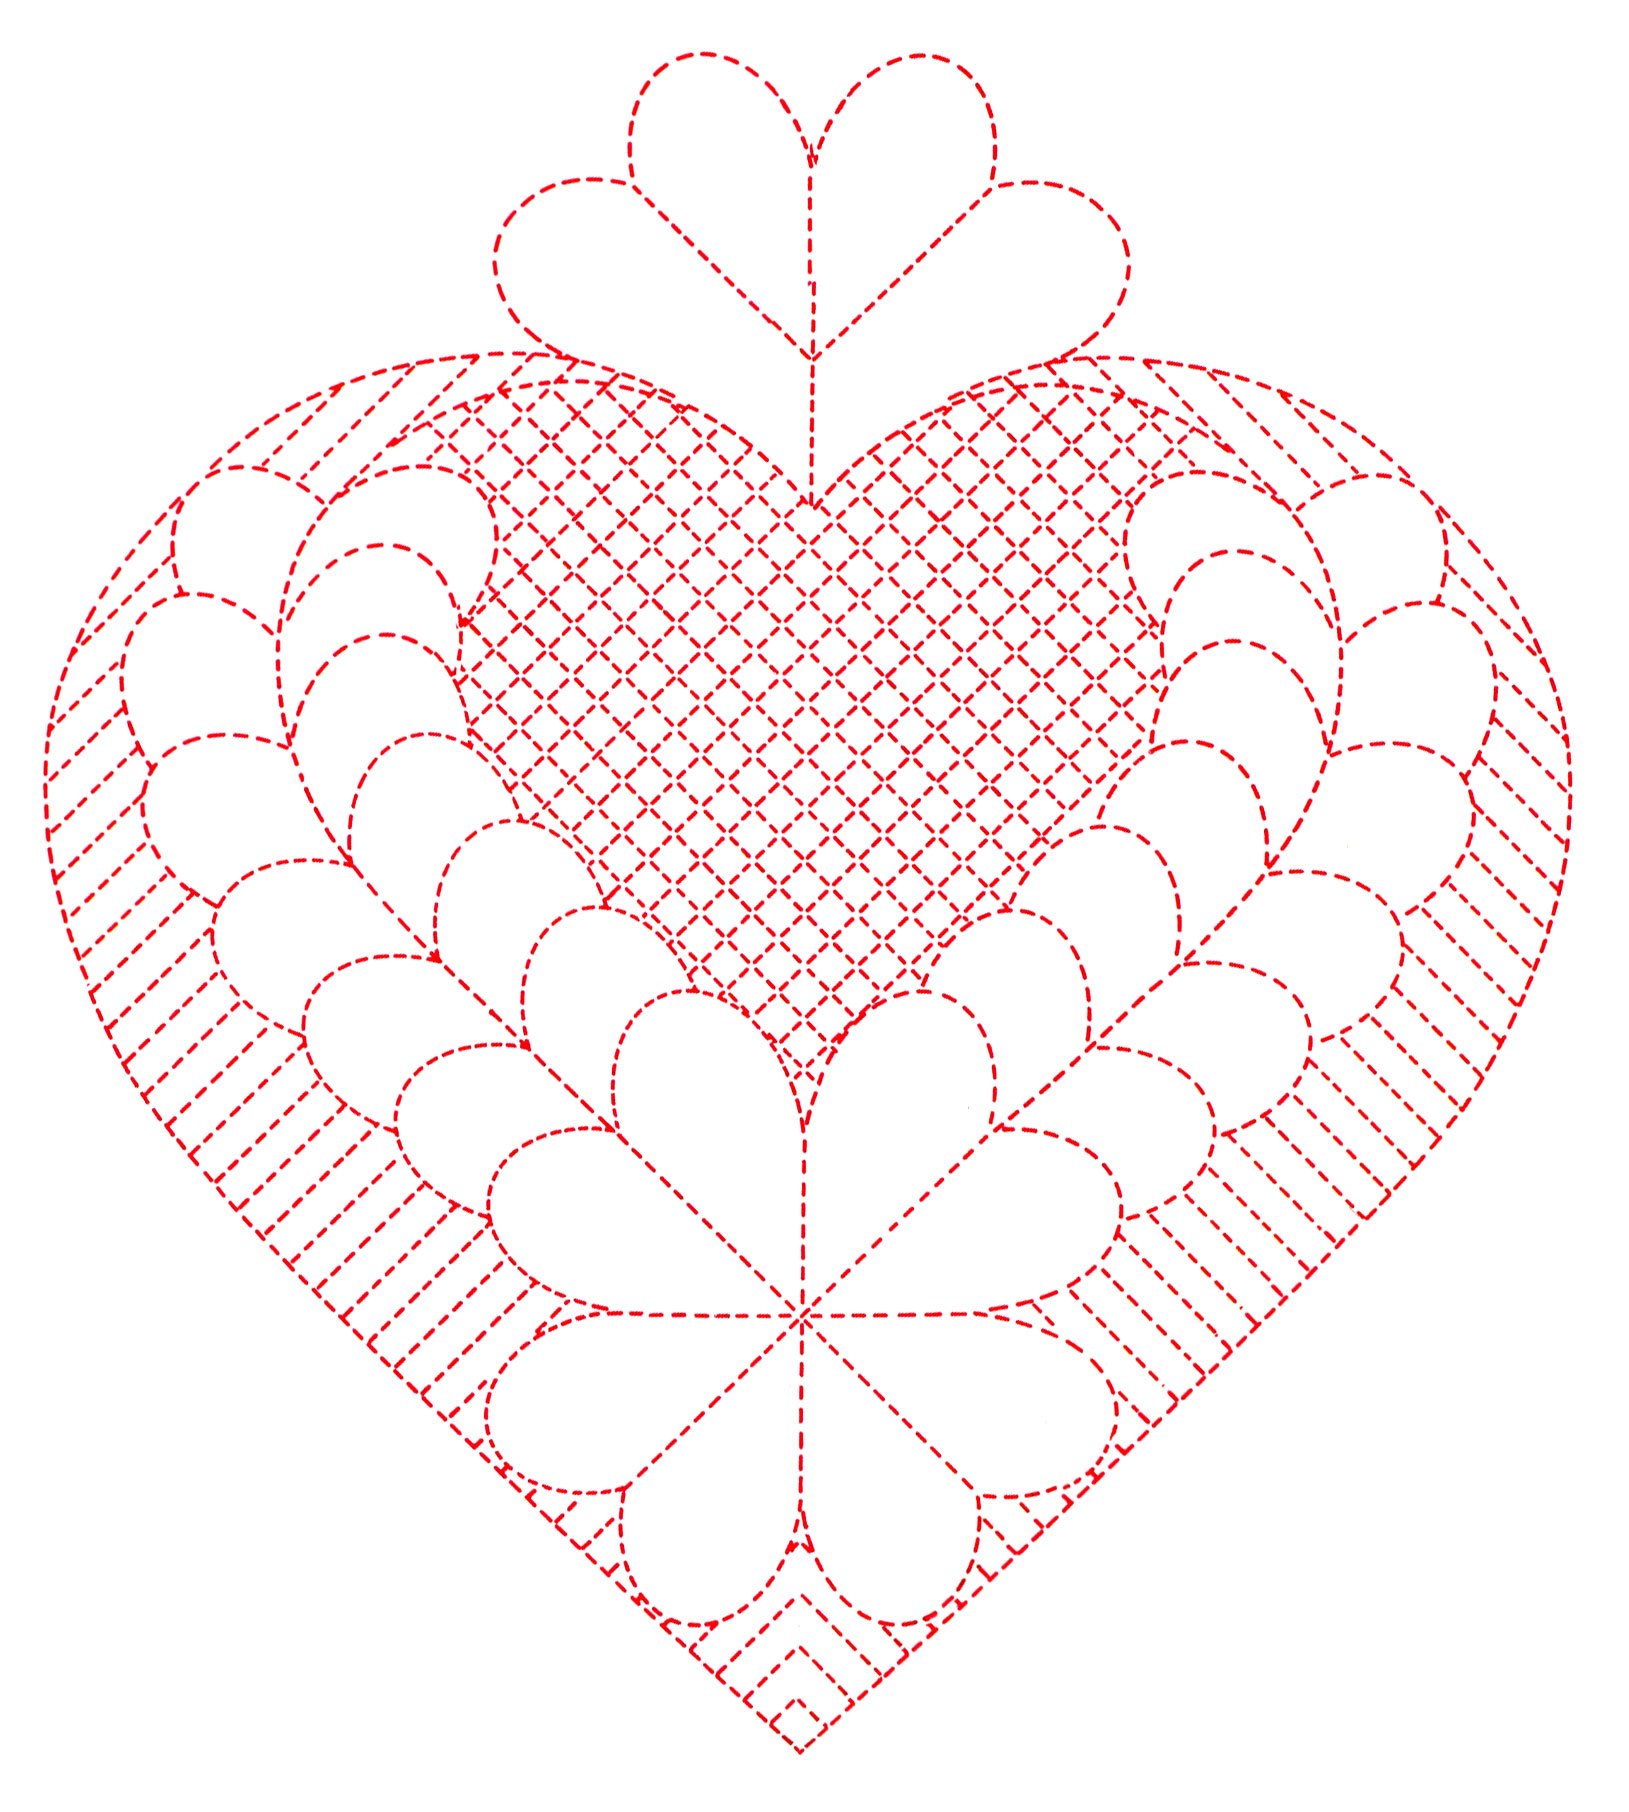 Hand Quilting Heart Patterns : 1000+ images about quilting motifs on Pinterest Hand quilting patterns, Hand quilting designs ...